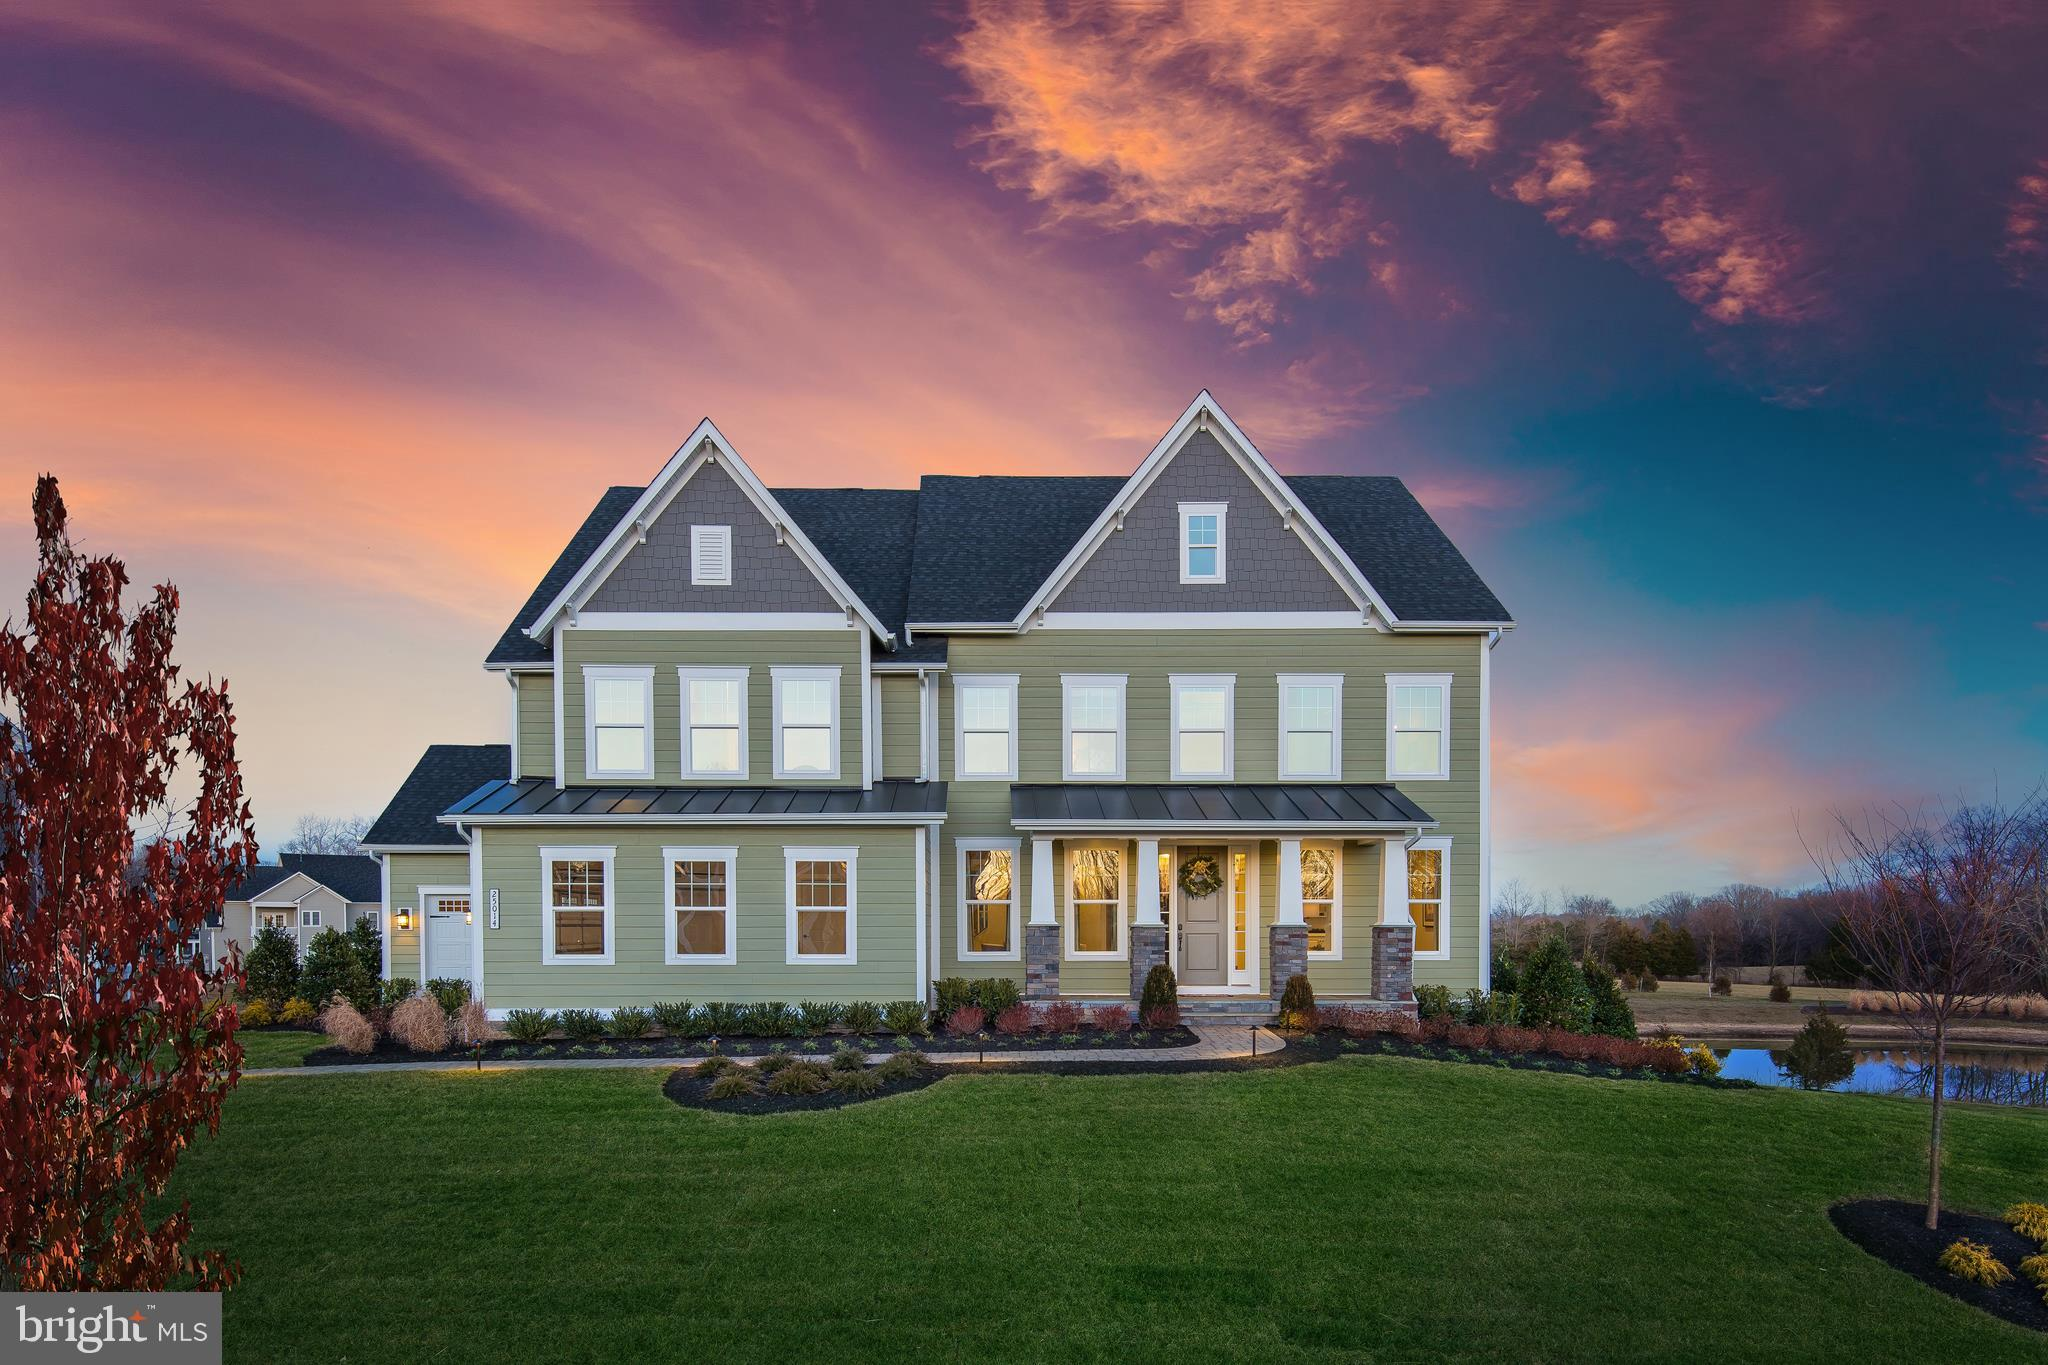 """Welcome to Greystone, featuring the only single family homes in a neighborhood with sidewalks, rolling hills, and seven miles of walking trails just minutes from the Borough. The Stratford Hall at Greystone delivers the grand home plan you want with all the beauty and craftsmanship youd hope for with an included hardieplank facade and bluestone front stoop. As you walk into the foyer you are greeted by light filled spaces feel welcoming. To one side, is the dining room, perfect for formal gatherings. To the other a flex room to make your own, whether its a living room, music room, even add double doors and built-in book cases to make it a library. Walk by a secluded study, perfect for working from home or even an option first floor suite, and central oak stair case as you enter the magnificent two-story family room. Off the family room you will find an open concept kitchen and dinette space with upgraded CushionClose cabinetry, quartz countertops, oversized island, and 5"""" hardwood floors.  This space is great for entertaining and large family gatherings. You ll love the family entry off of the 2-car side entry garage featuring an arrival center to drop all of your bags. 3 and 4 car garages available. The second floor continues to give you the same sense of arrival as on the first floor with a wide hallway overlooking the family room. Each of the bedrooms feature a walk-in closet and its own bath. The luxurious owners suite with dramatic double door entry offers a cozy sitting area, two enormous walk-in closets with a mirror, a spa like bath and roman shower, and separate water closet. Your included finished basement with full bathroom gives you even more space to spread out and entertain.You will love calling the Stratford Hall your home!"""